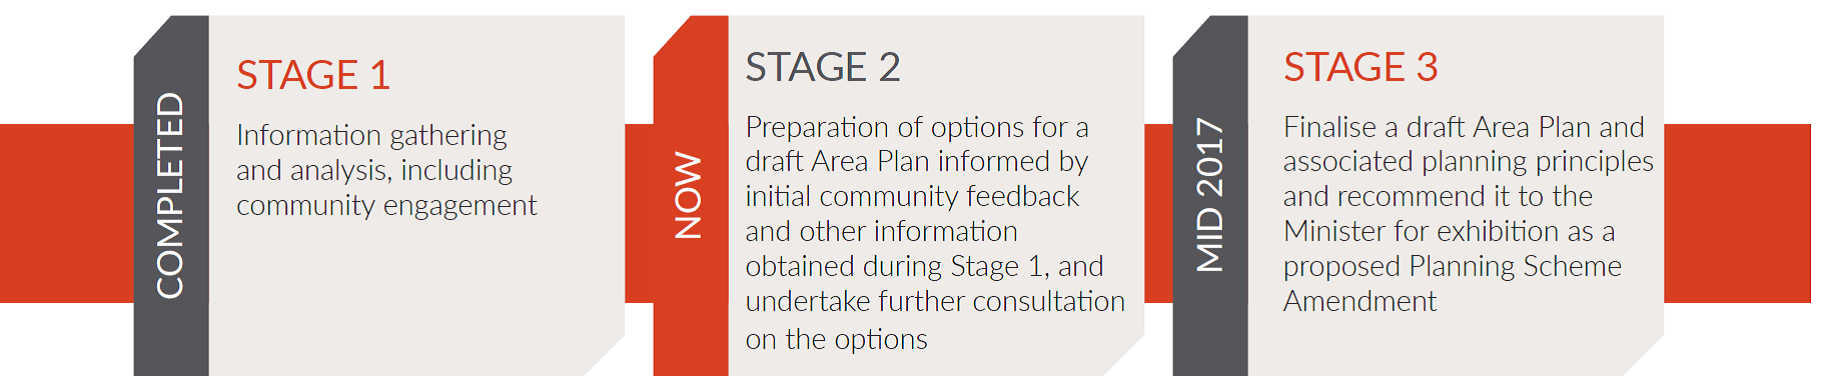 Three stage process for development of the Area Plan. Depicted as a horizontal flow chart. Stage 1 includes information gathering and analysis. Stage 2 includes preparing options for the Area Plan and further community consultation. Stage 3 involves finalising the Area Plan and recommendation to Minister.